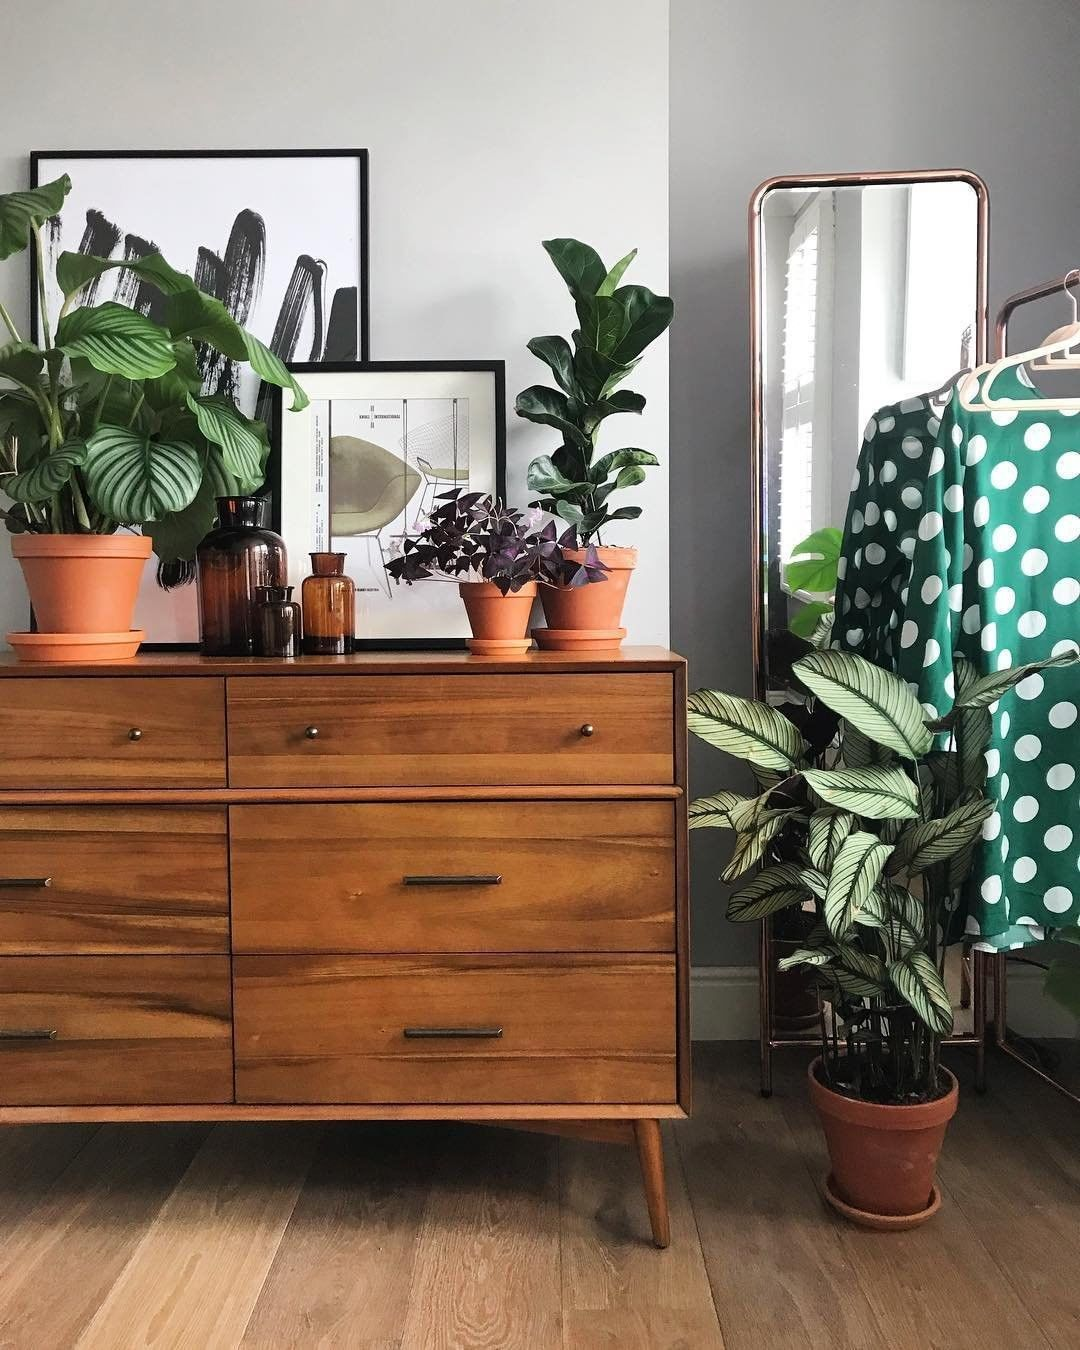 West Elm On Instagram Fairtrade Plants Happy Friday The Mid Century Dresser Is Mid Century Dresser Living Room Transformation West Elm Furniture